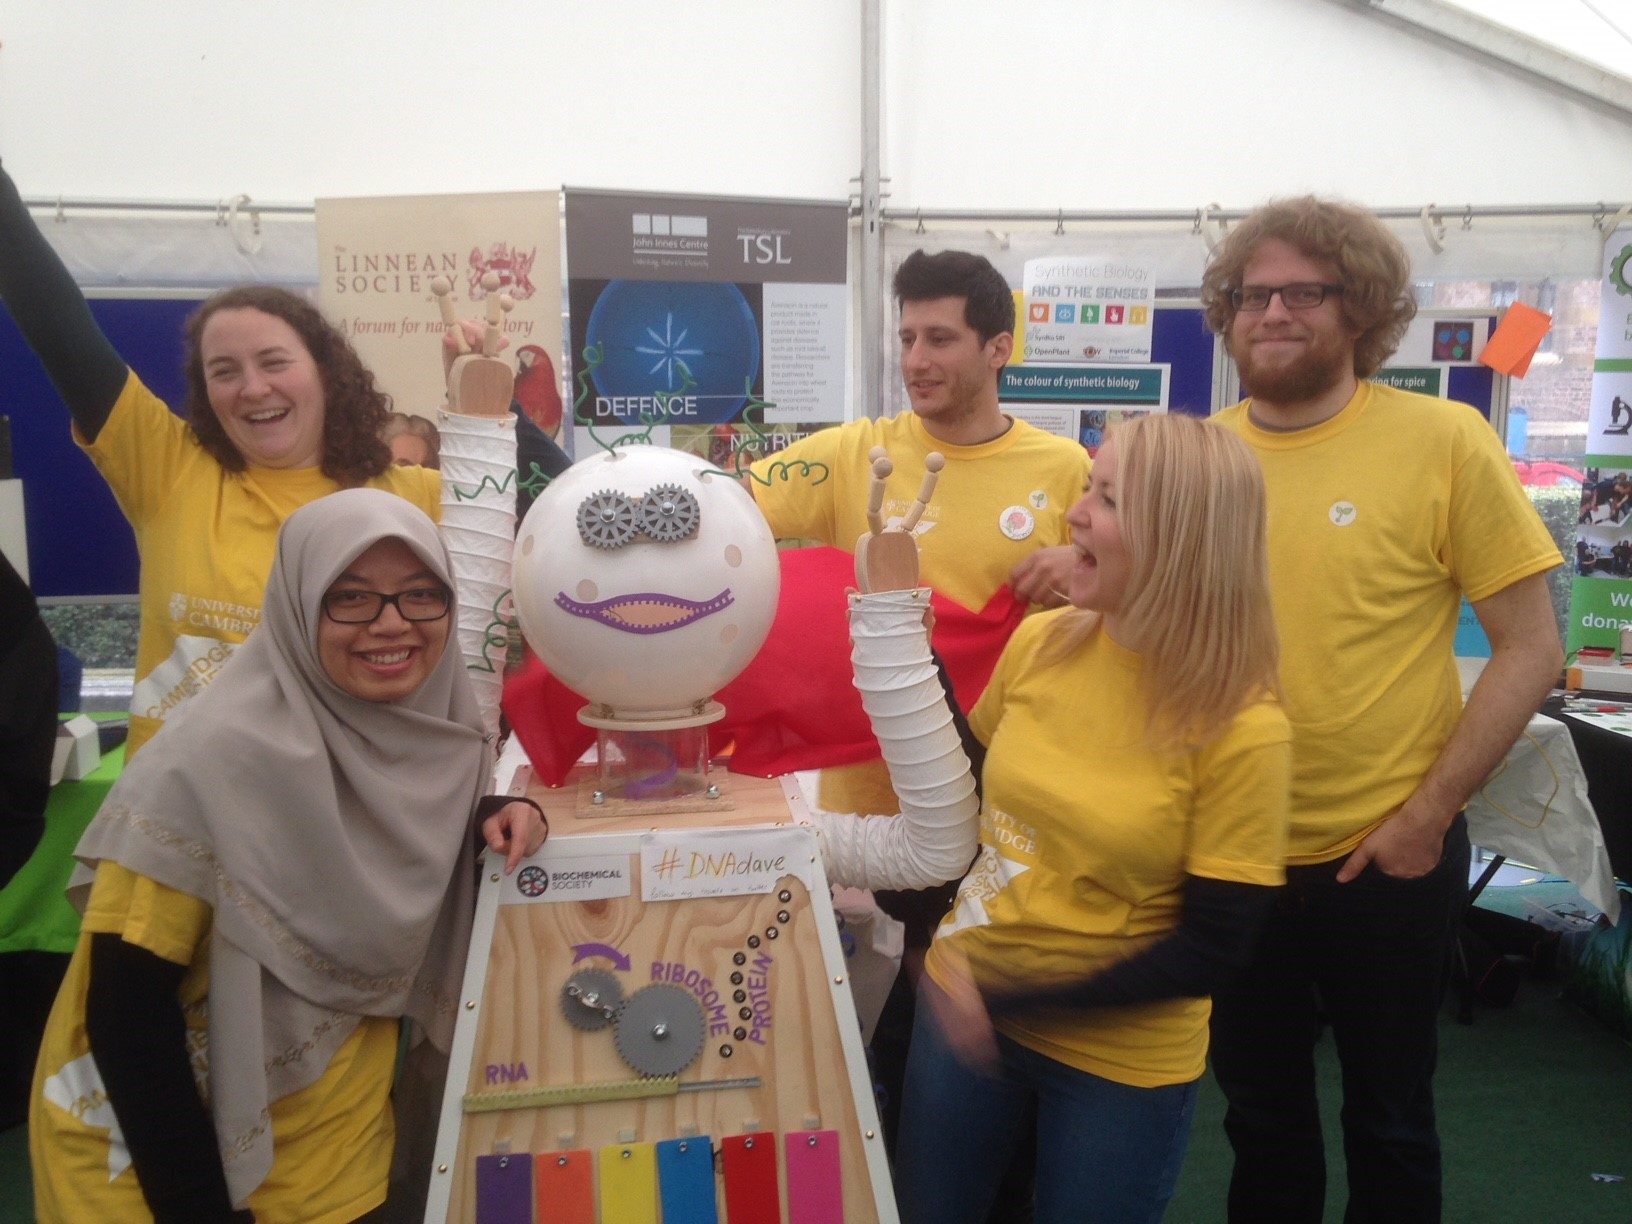 DNA Dave at the Cambridge Science Festival 2017